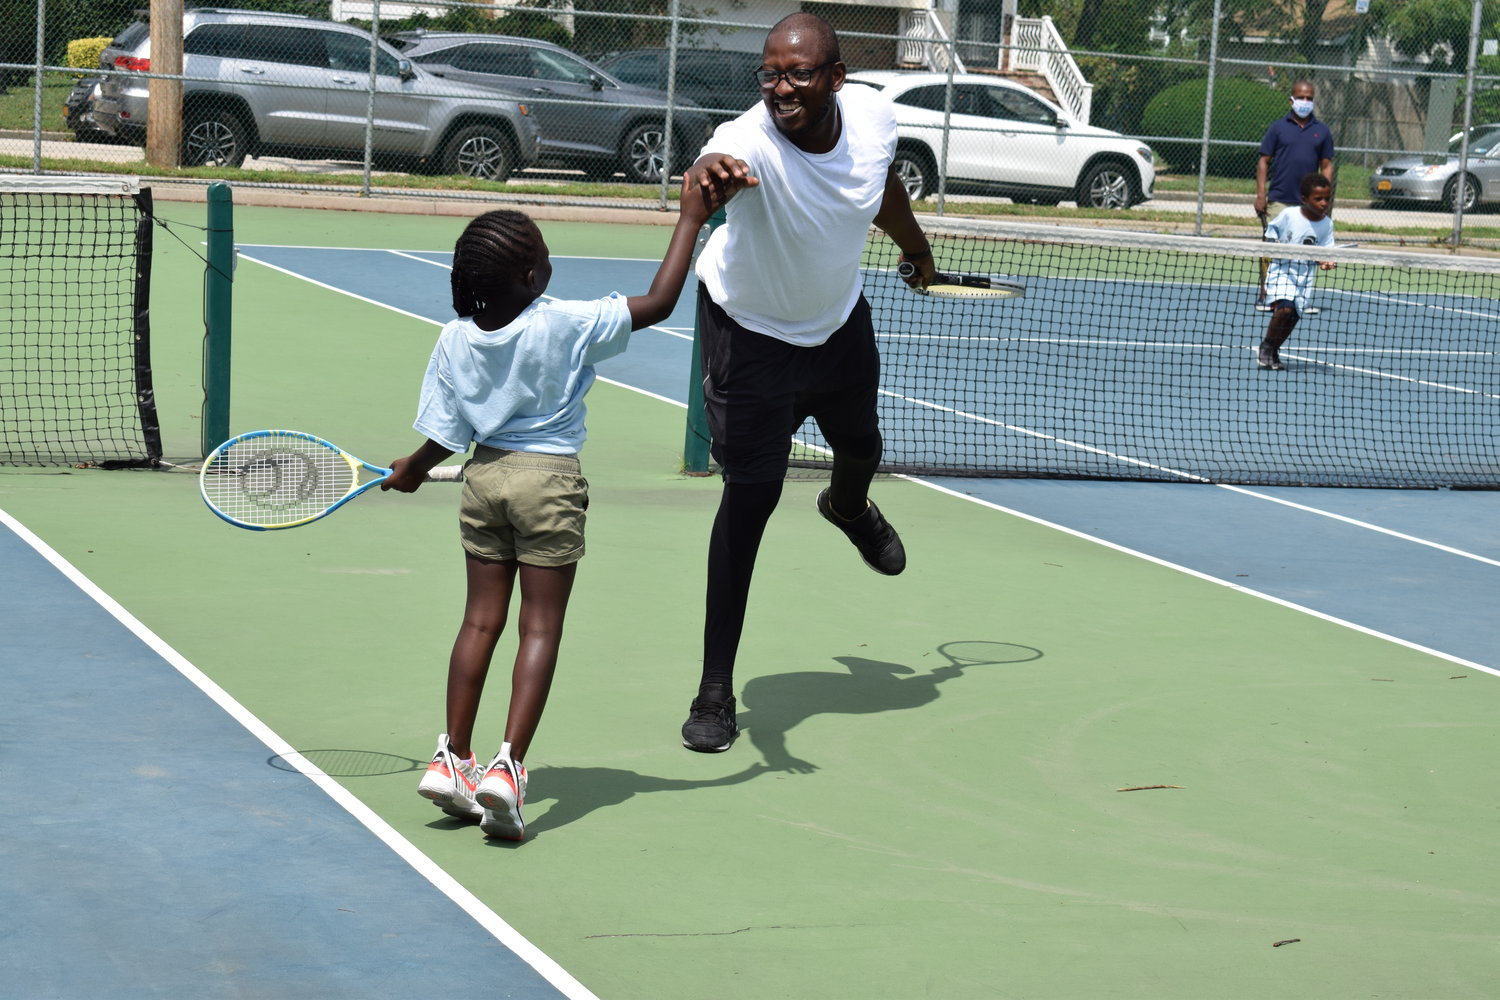 Obeng Dwamena high-fived his daughter, Aneesa Dwamena, 6, during a friendly game in the Learning Institute of Tennis, Life Skills and Sportsmanship's summer program.